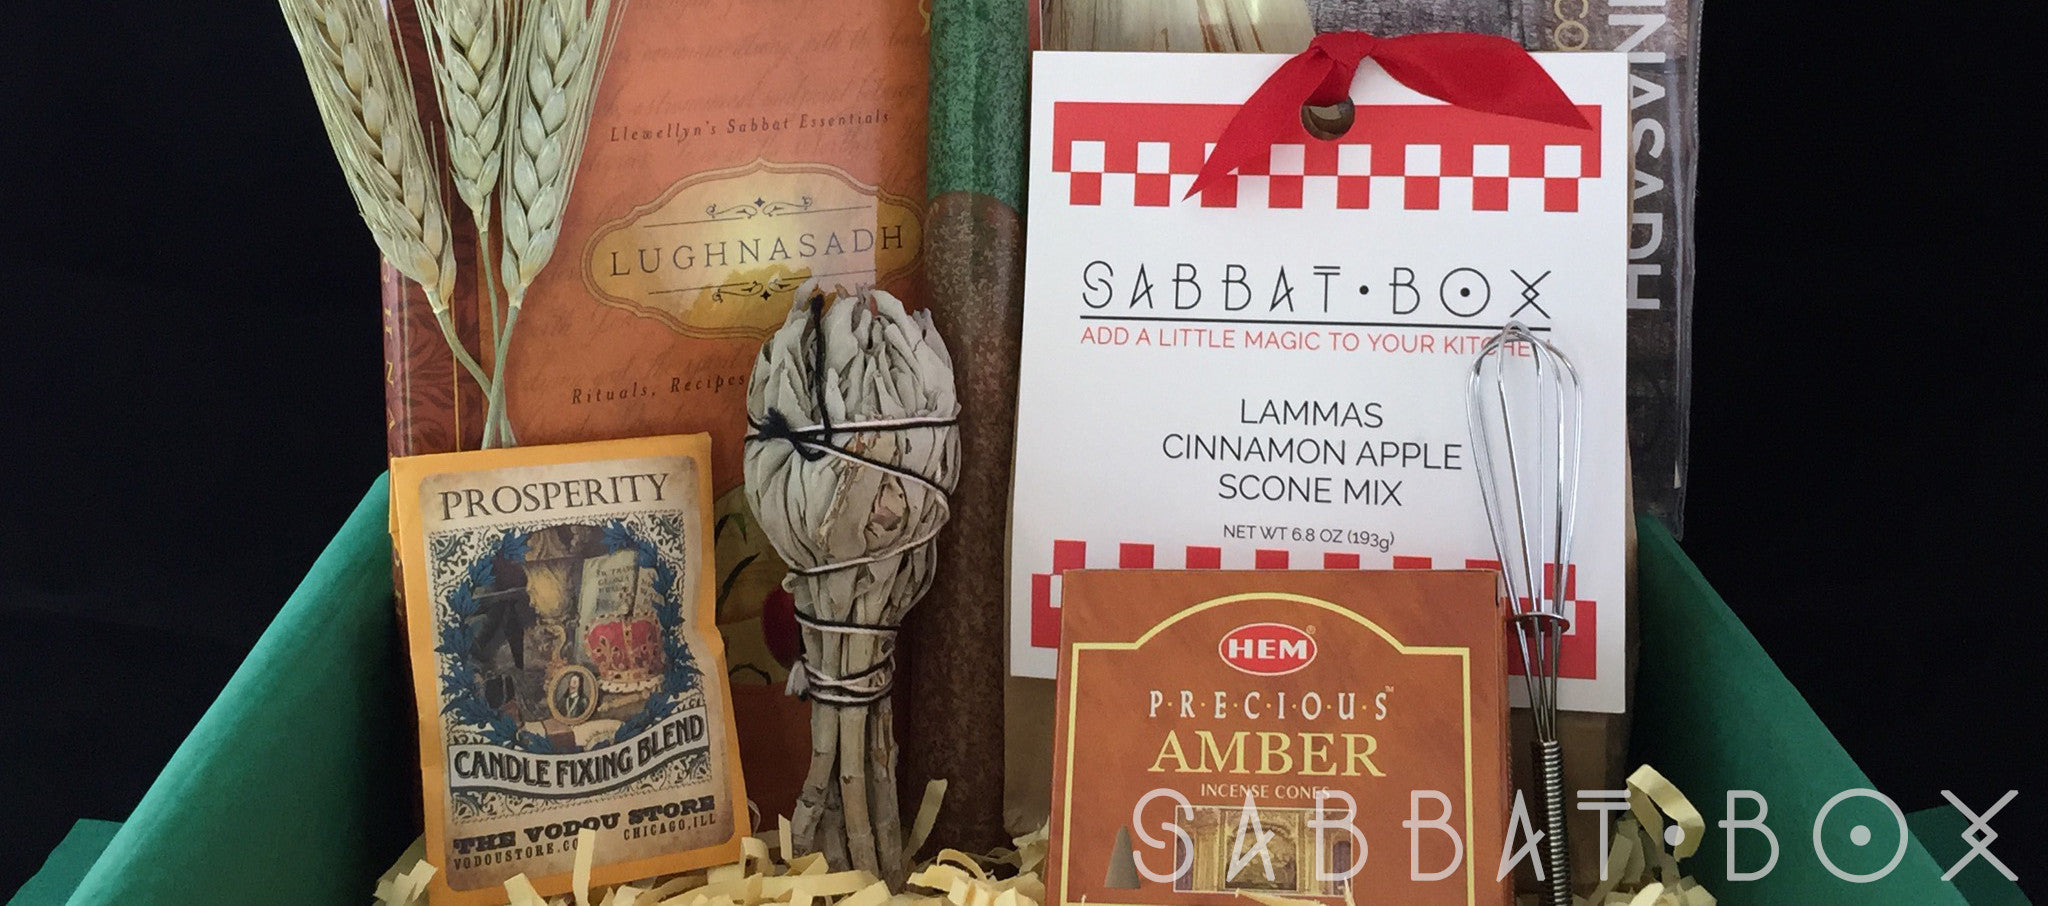 Products From The Lammas Sabbat Box